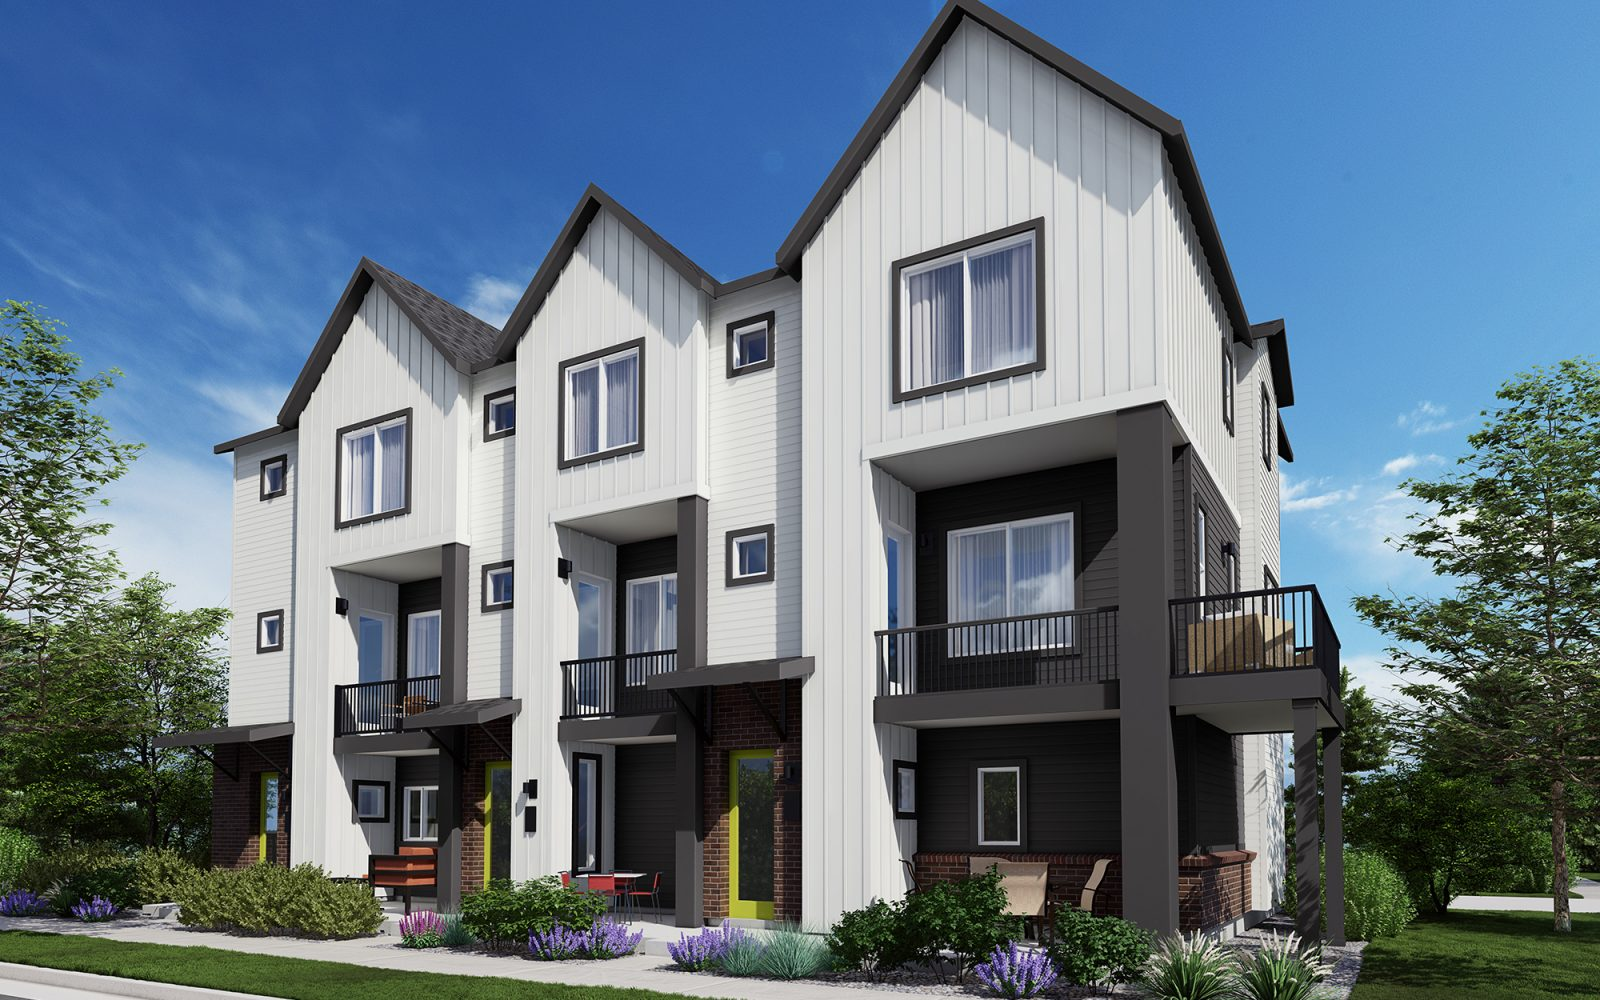 Downtown Superior 3-Story Rows: Exterior Rendering